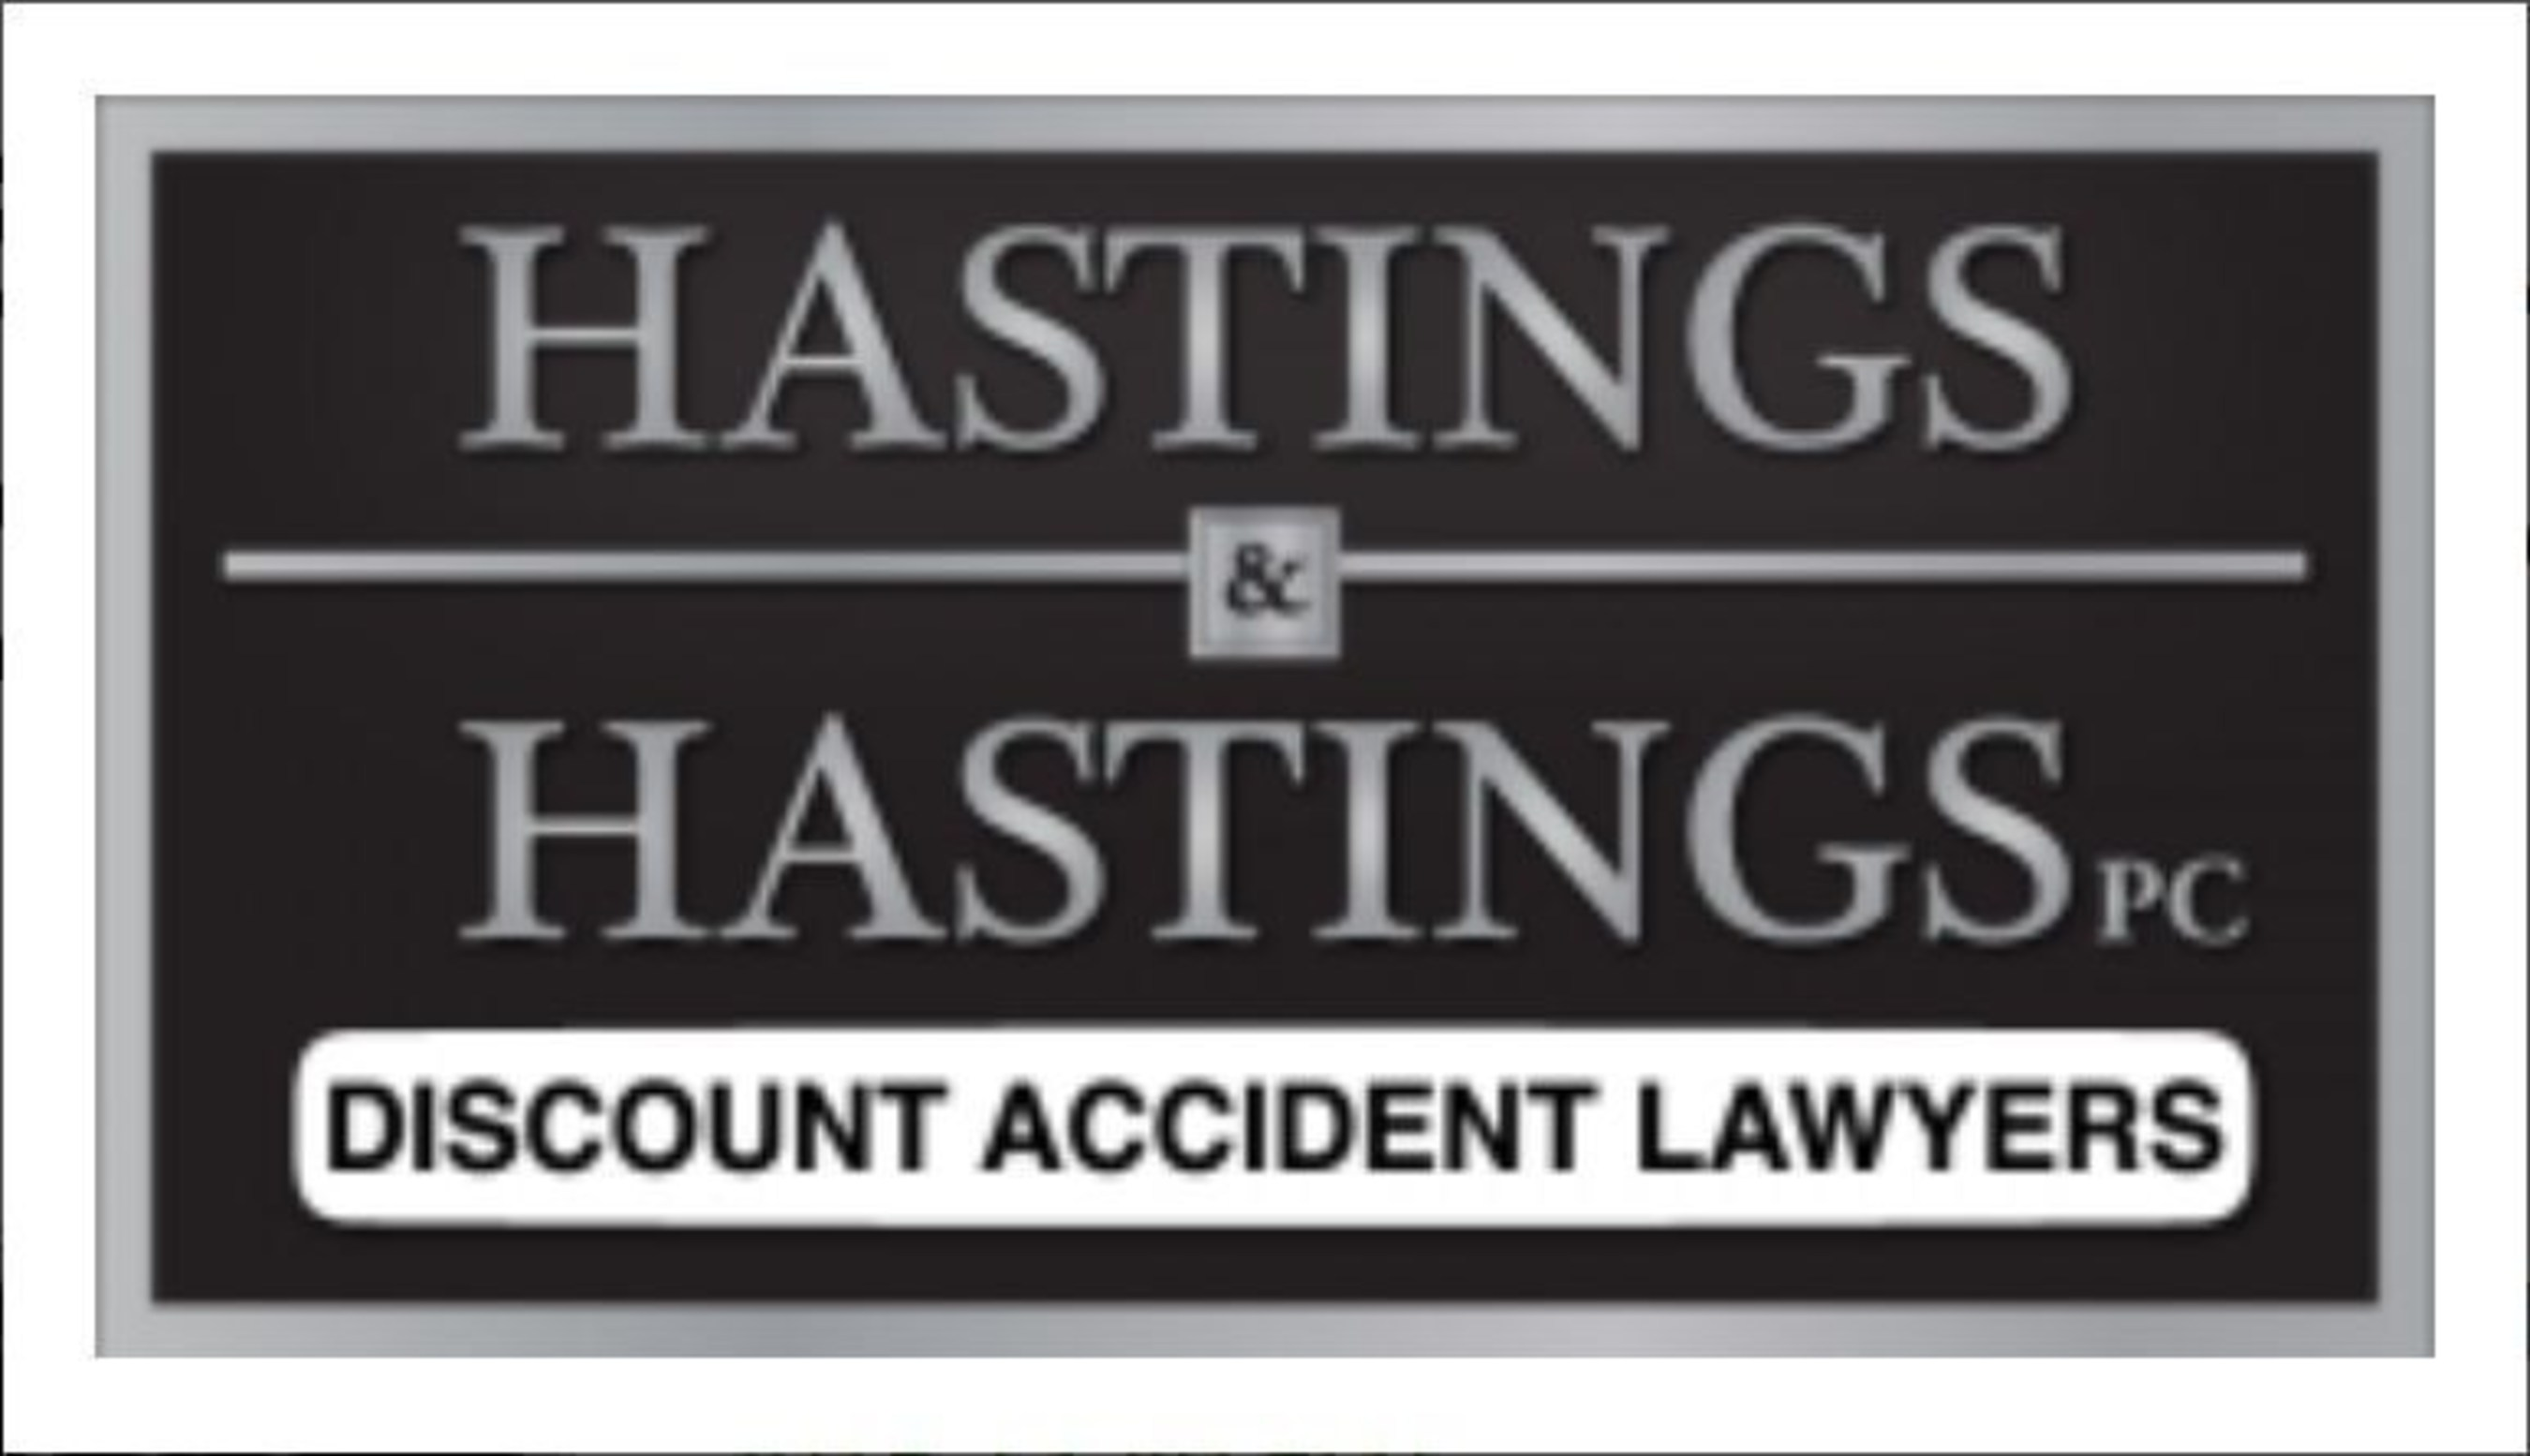 Hastings and Hastings Provides Information About Defensive Driving Class